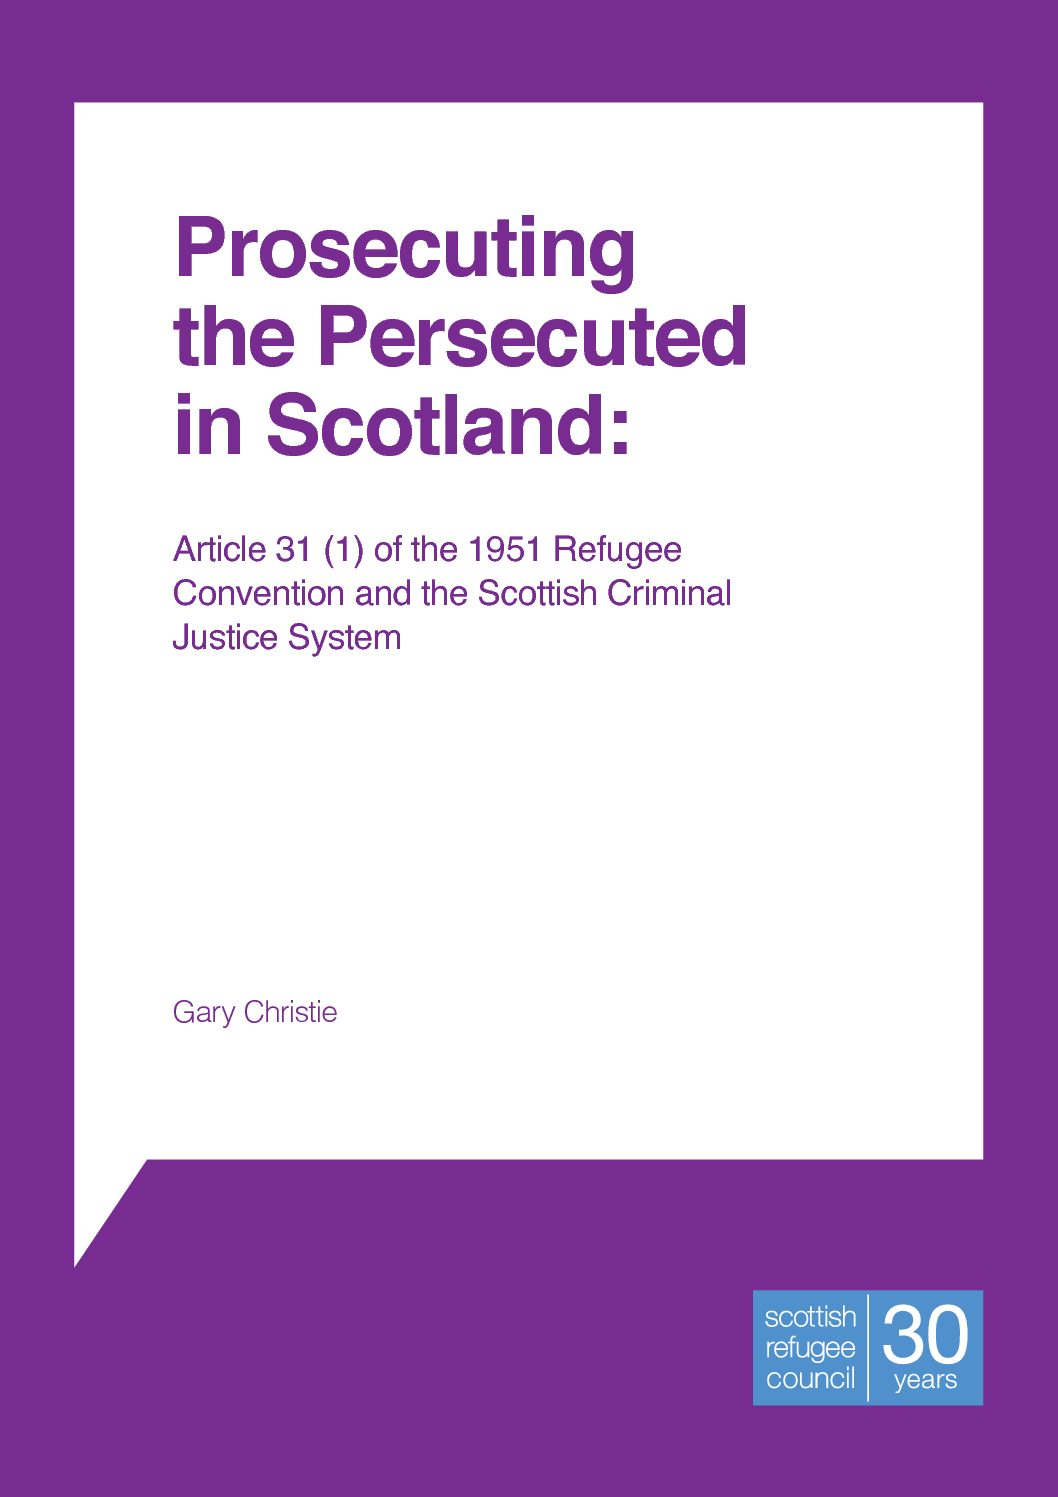 Article-31-1-of-the-1951-Refugee-Convention-and-the-Scottish-Criminal-Justice-System-pdf